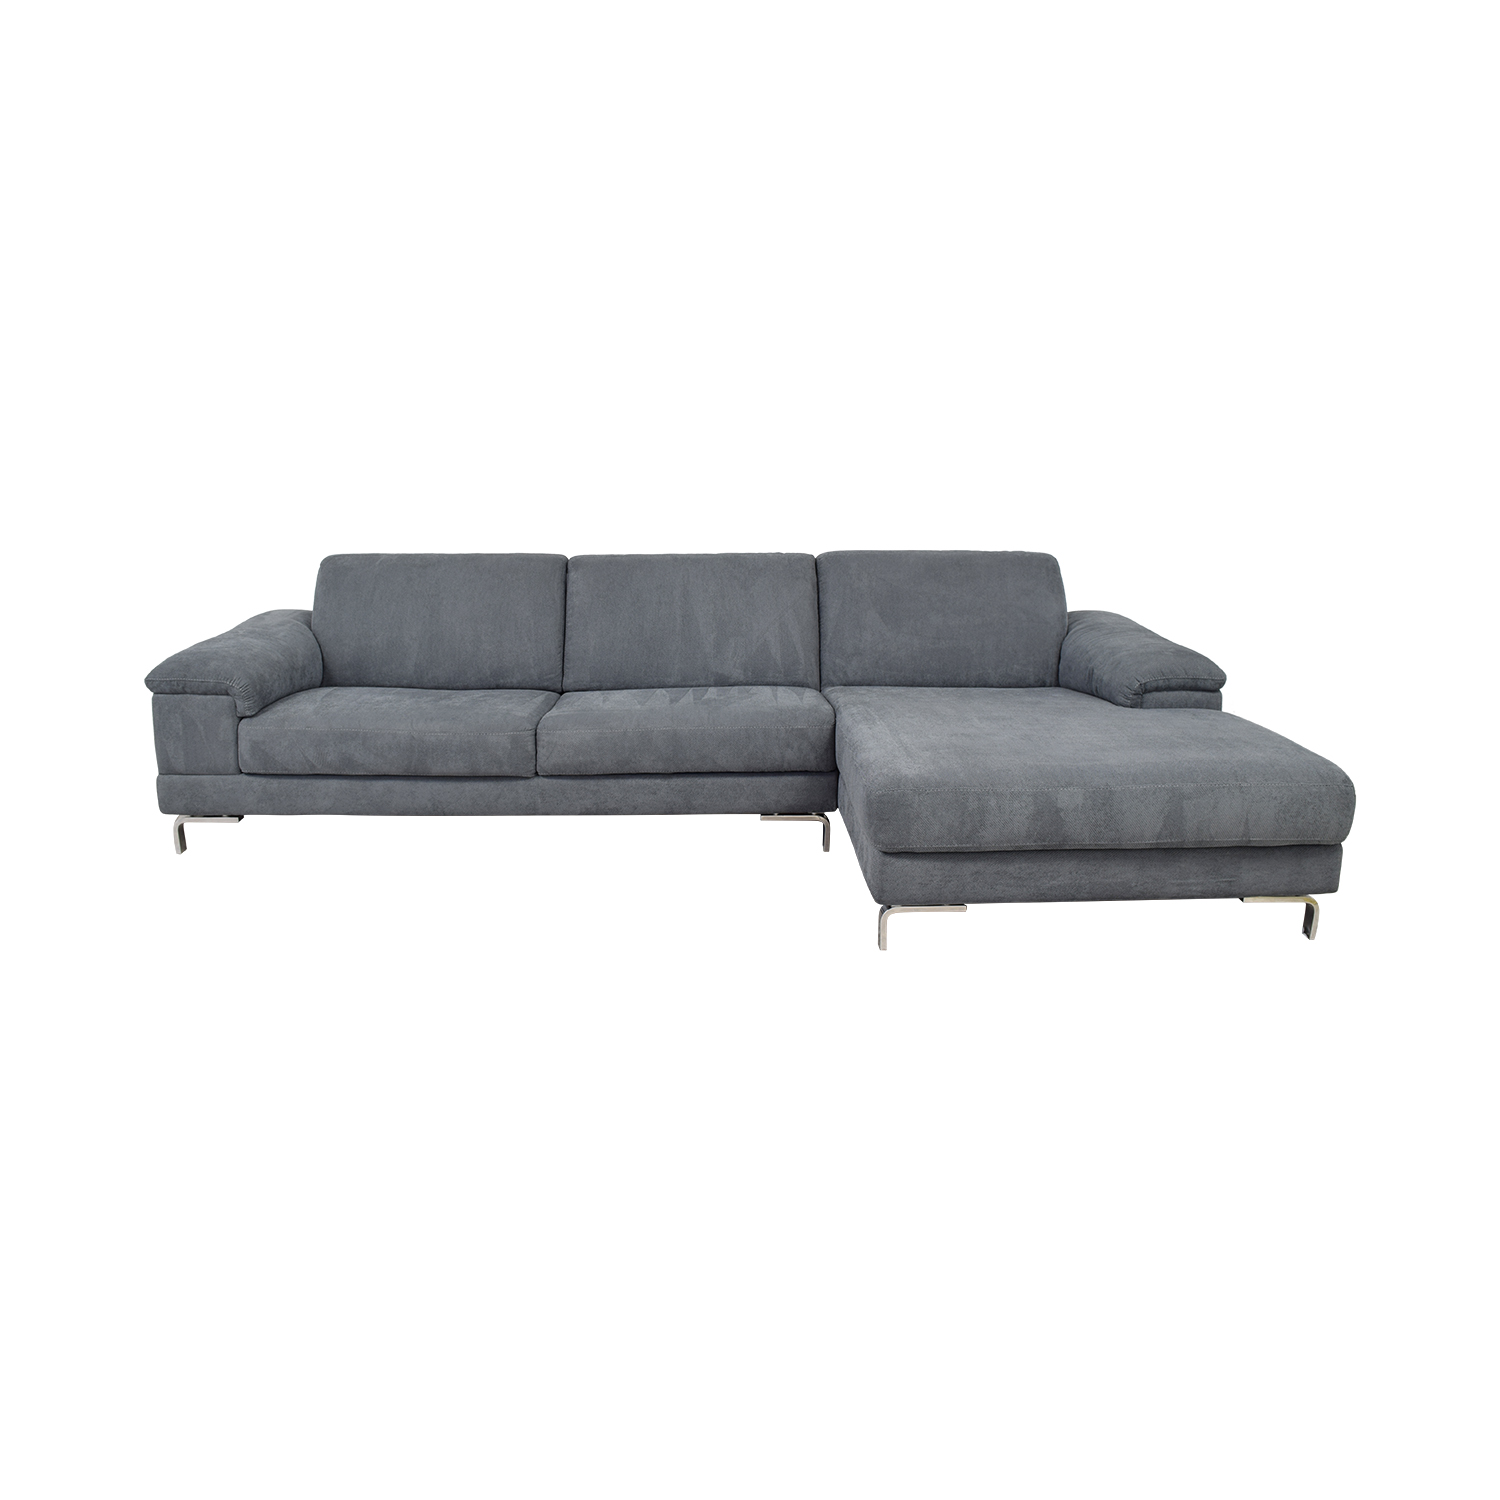 Bloomingdale's Bloomingdale's Grey Italian Fabric Chaise Sectional discount